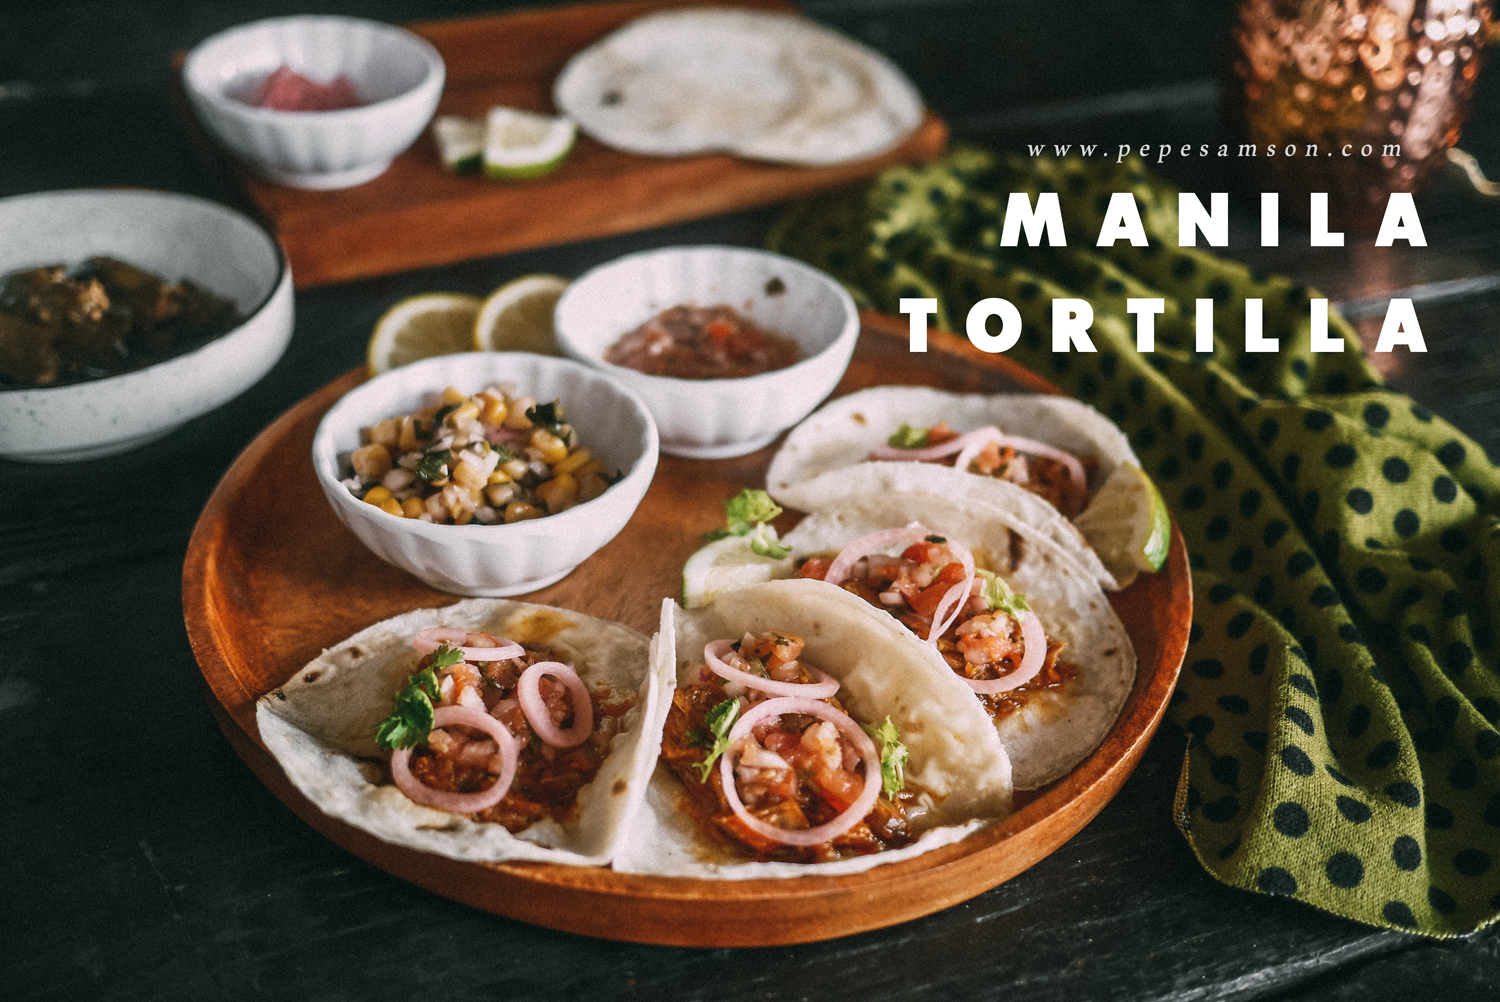 Elevate Your Taco Experience with Manila Tortilla